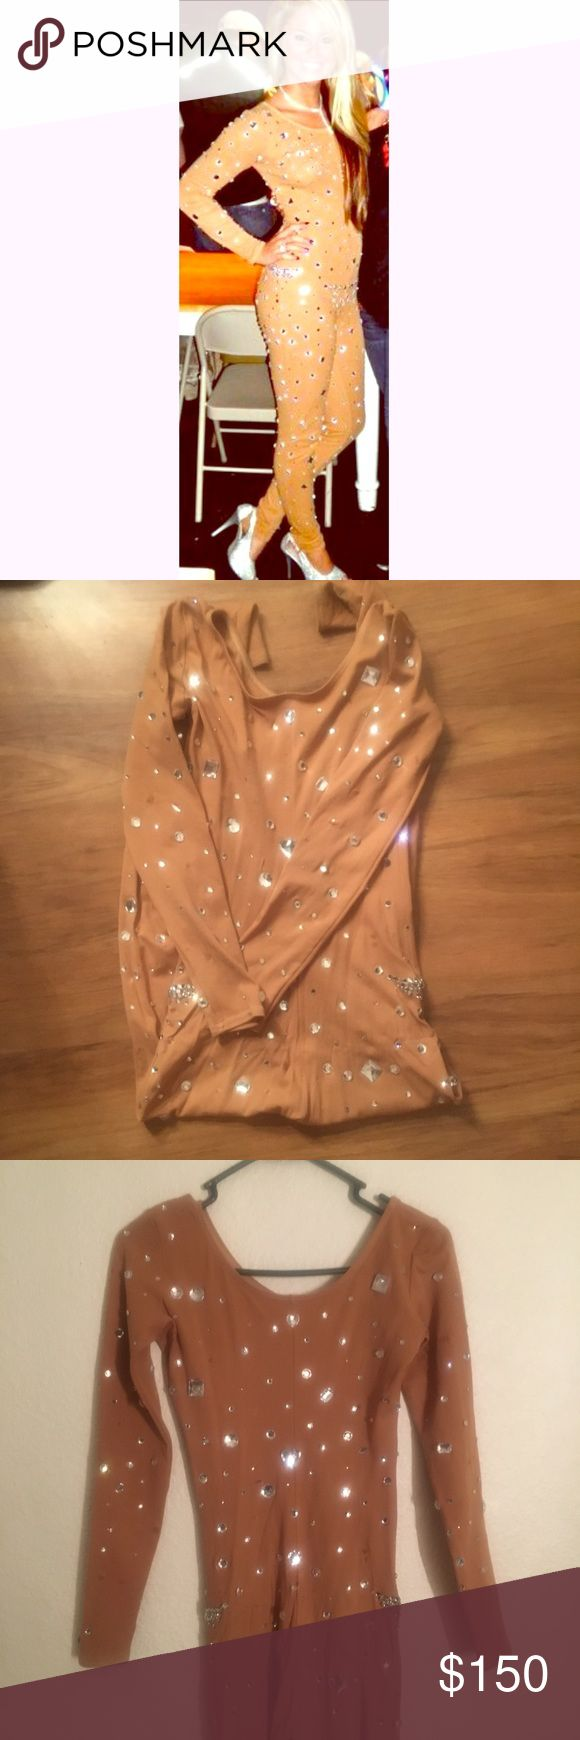 SEXY Britney Spears TOXIC costume sz small SUPER SEXY BRITNEY SPEARS Halloween costume completely handmade by me, size small!! A few rhinestones have fallen off but I'd be happy to apply more if purchased!! PERFECT HALLOWEEN COSTUME!! Only worn once! Other